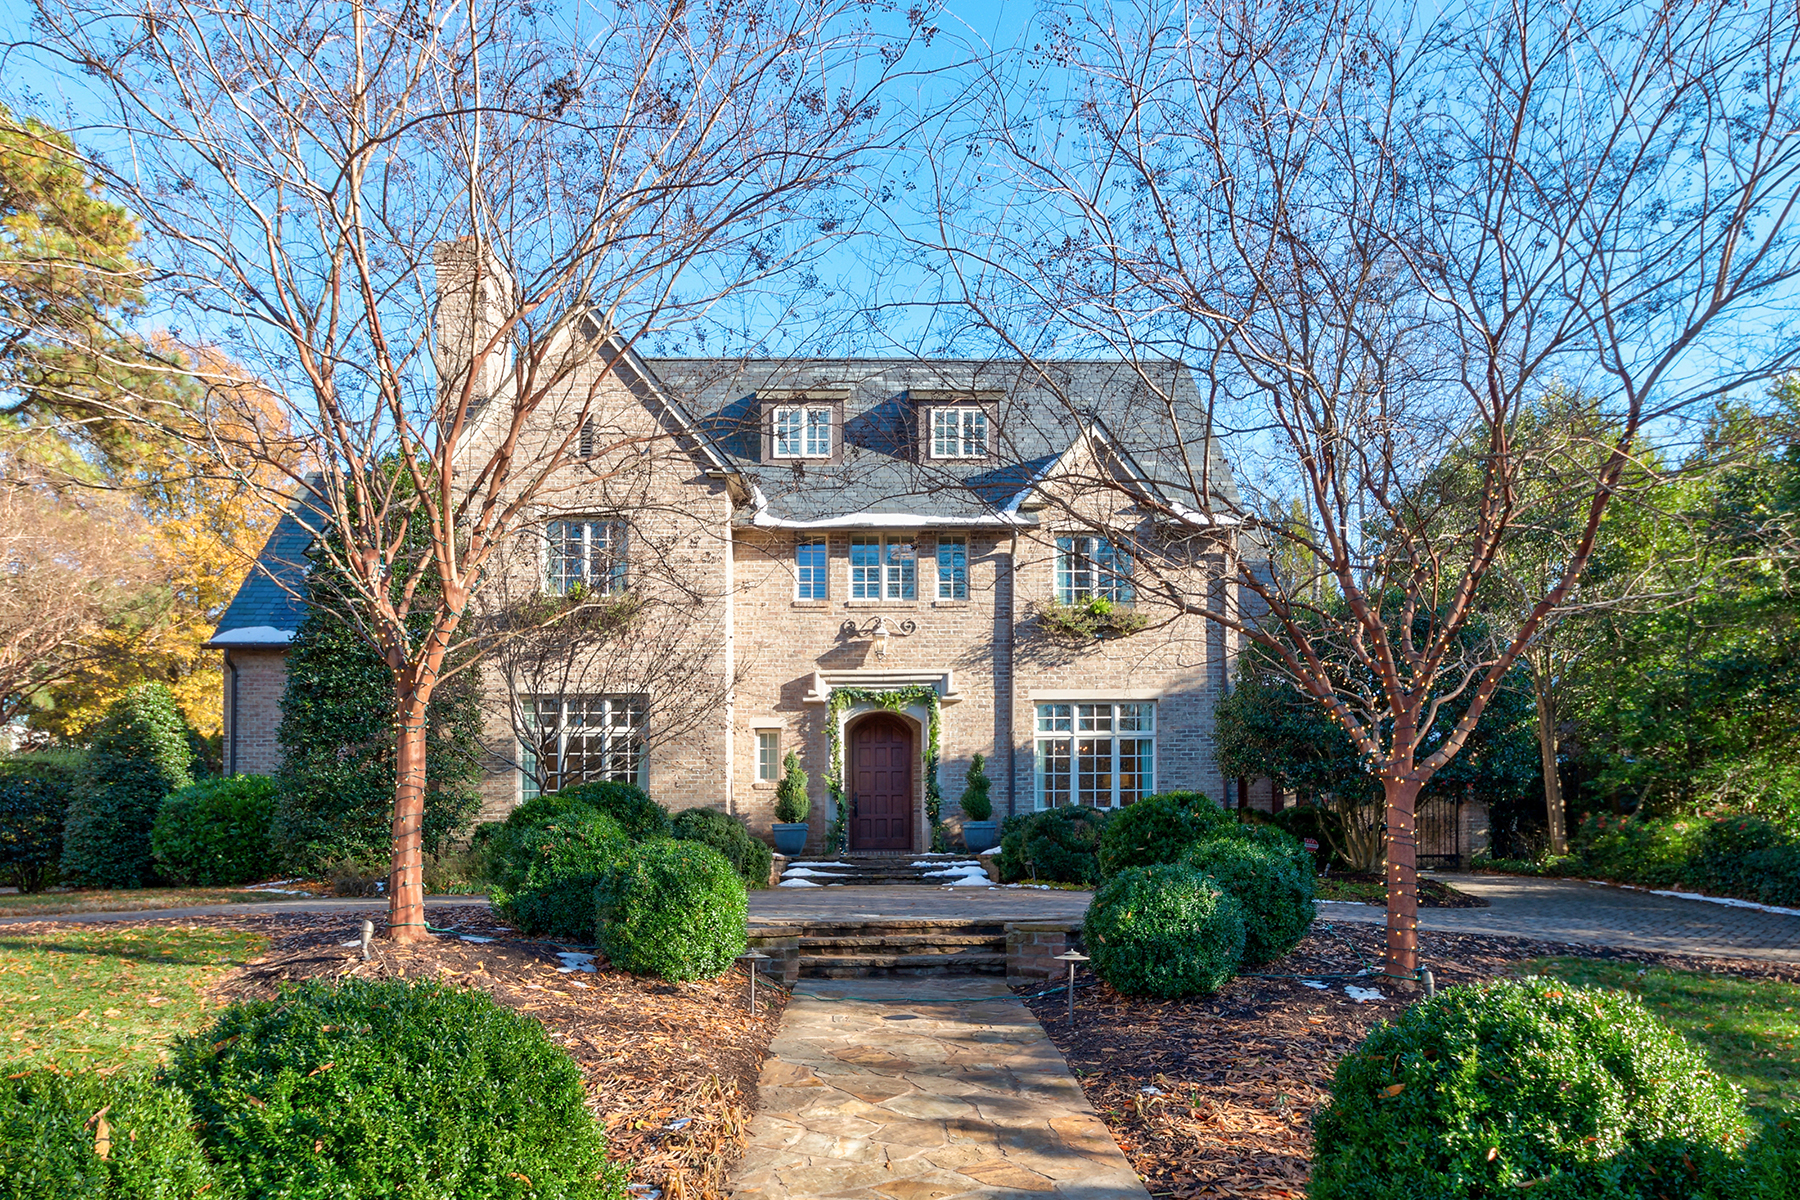 Single Family Home for Active at MYERS PARK 1711 Brandon Rd Charlotte, North Carolina 28207 United States